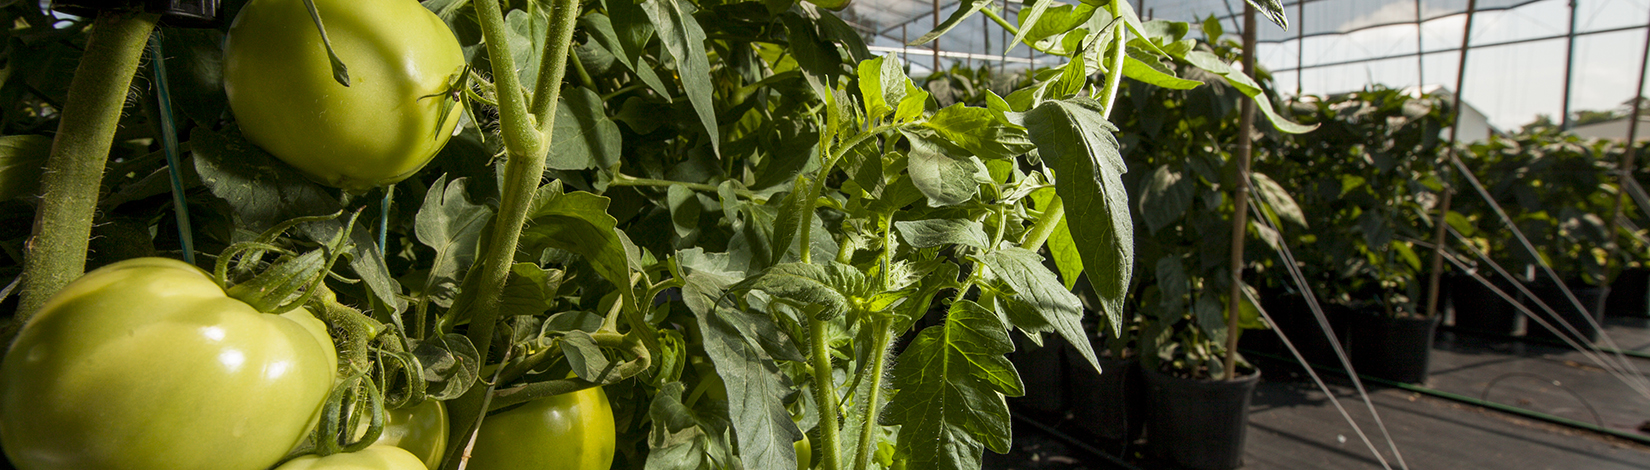 Nursery and Greenhouse-Production Systems - UF/IFAS Extension